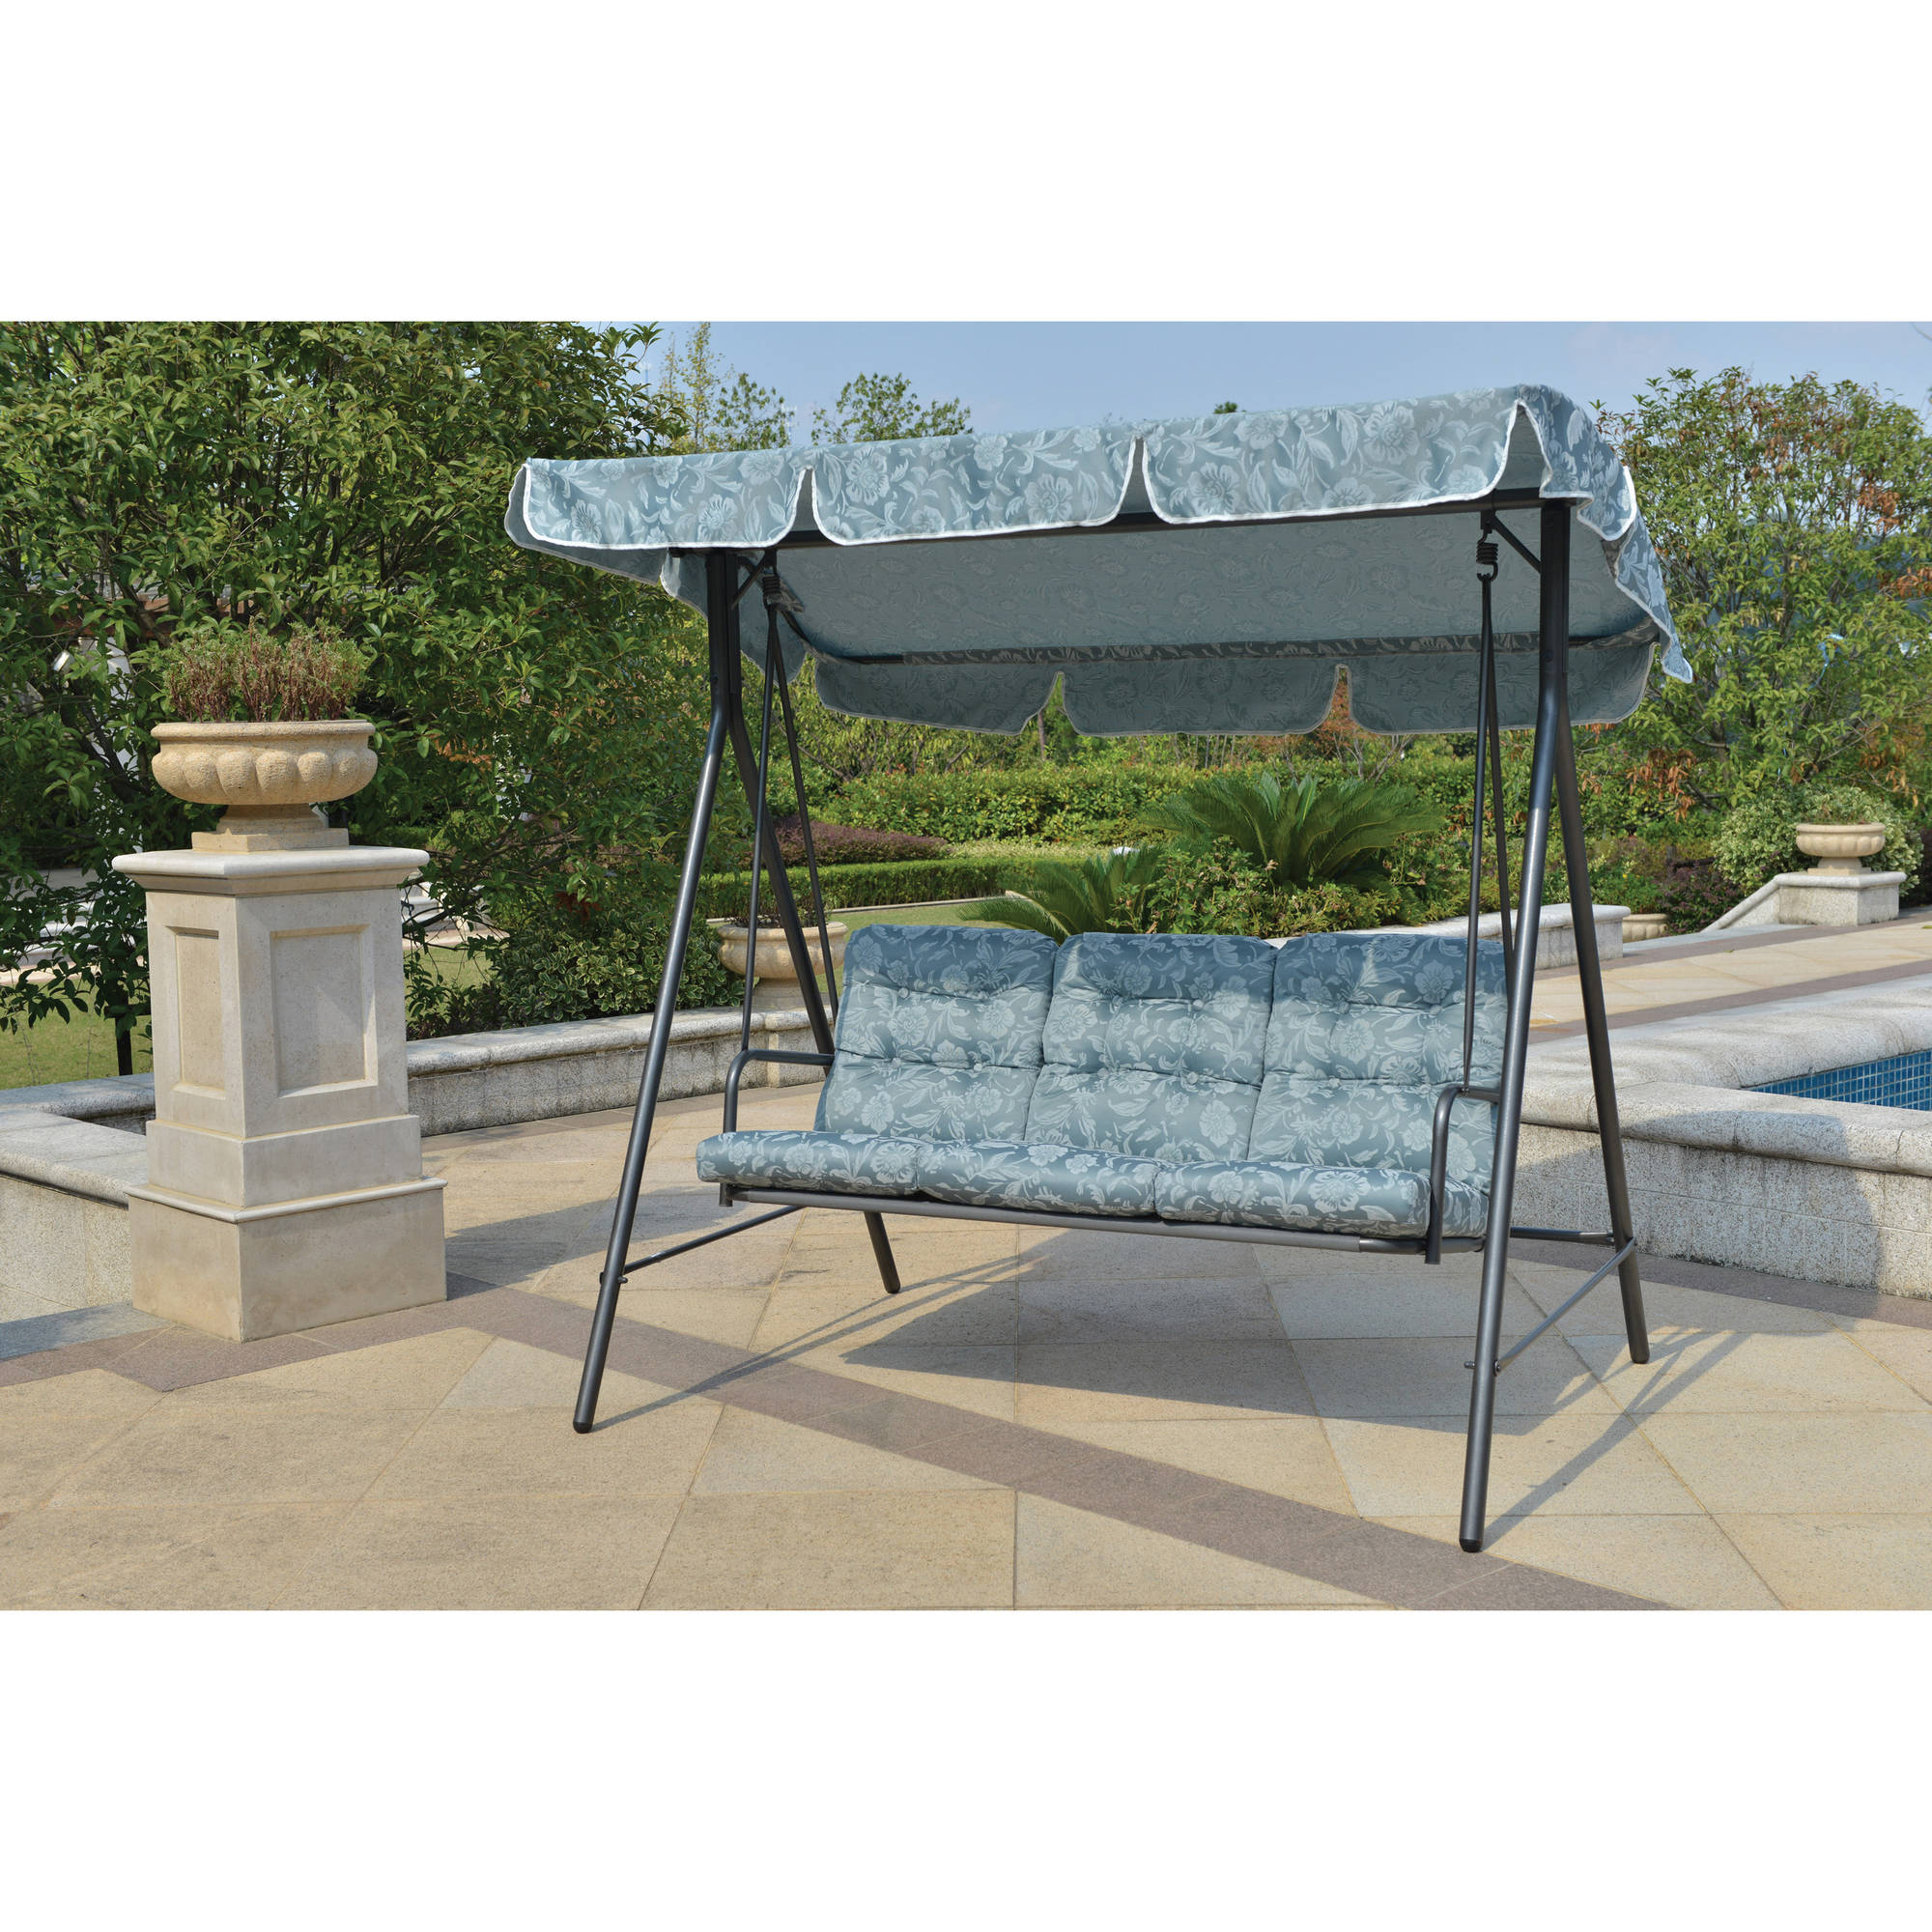 the swing and metal with canopy outdoor patio home ideas l replacement swings attractive an minimalist furniture decor porch backyard cover appearance